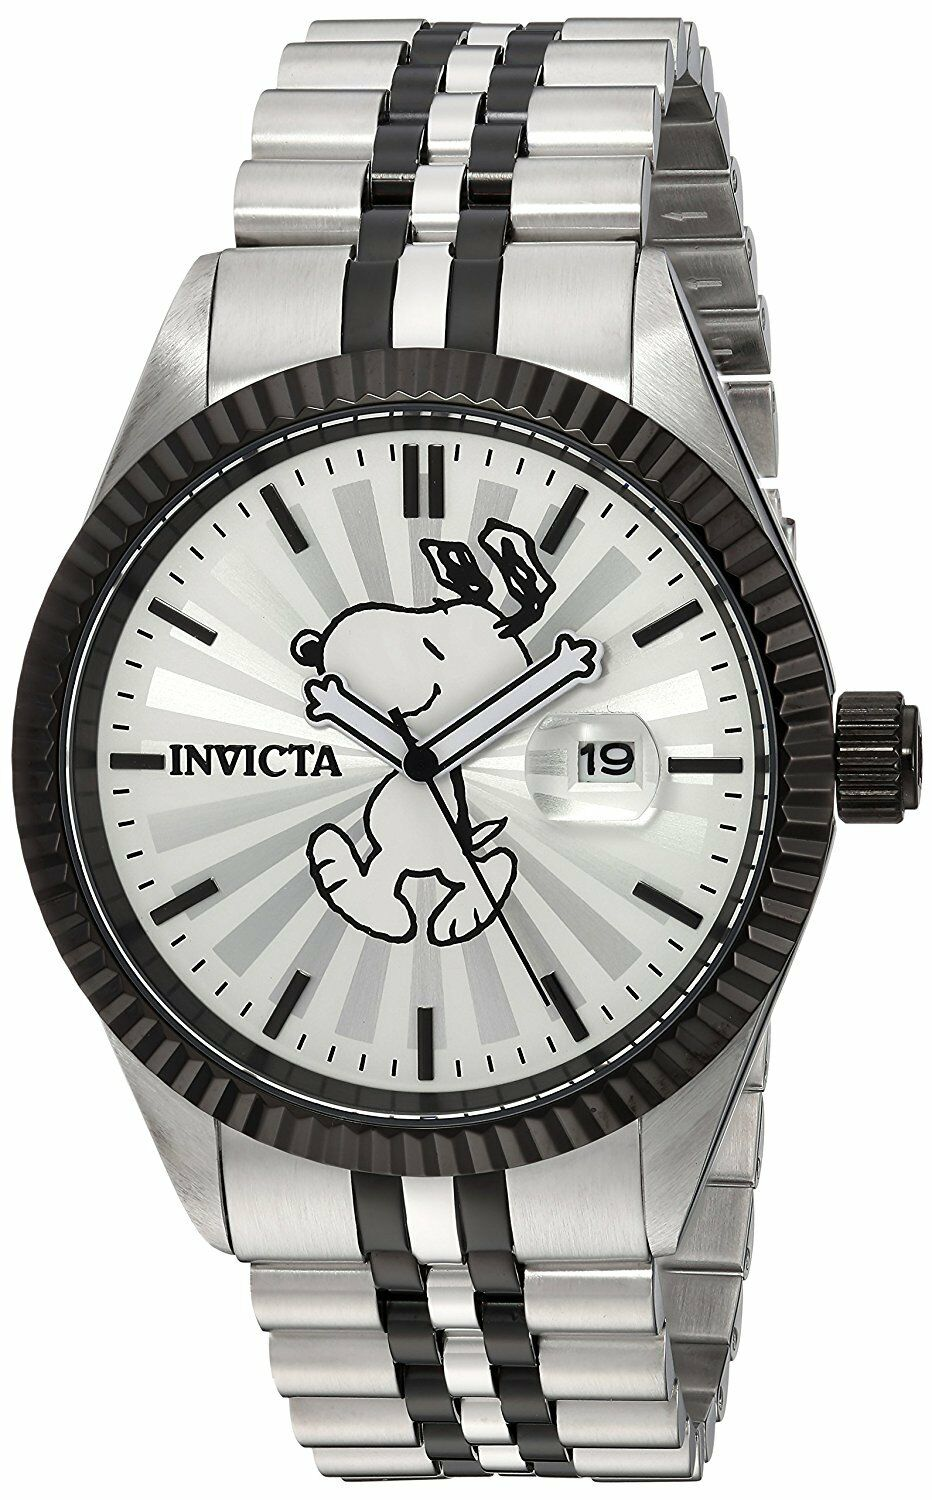 Invicta Character Watch Steel 43mm 24804 Collection Tone Men's Two v8wOyN0mnP